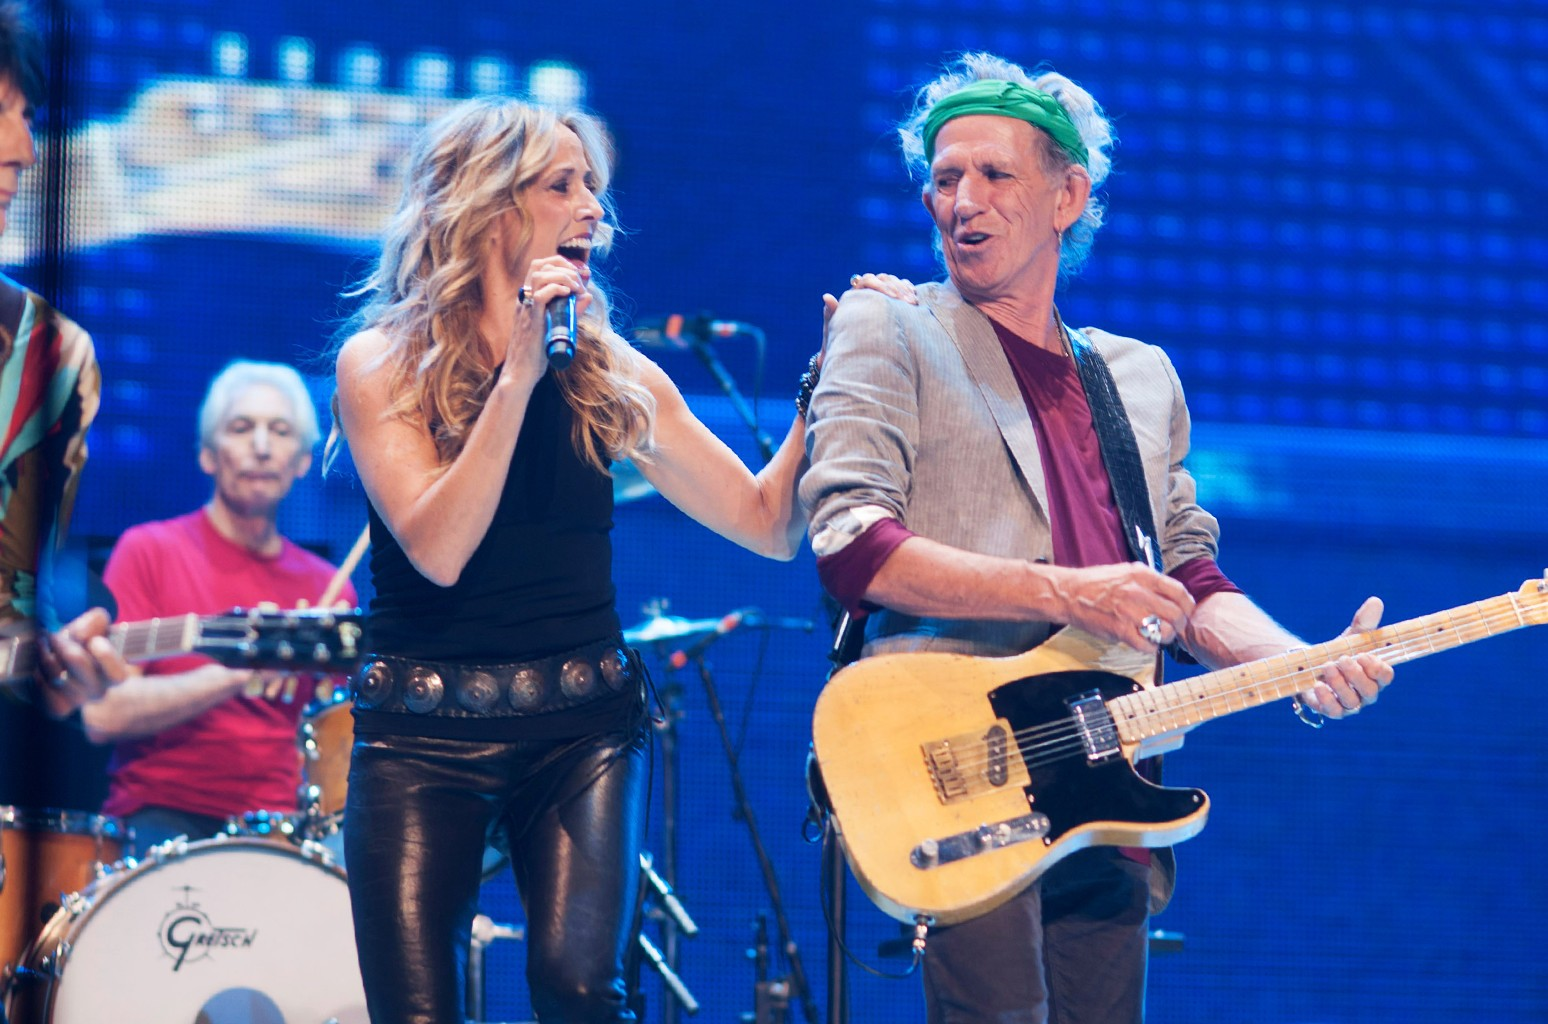 Sheryl Crow and Keith Richards of the Rolling Stones